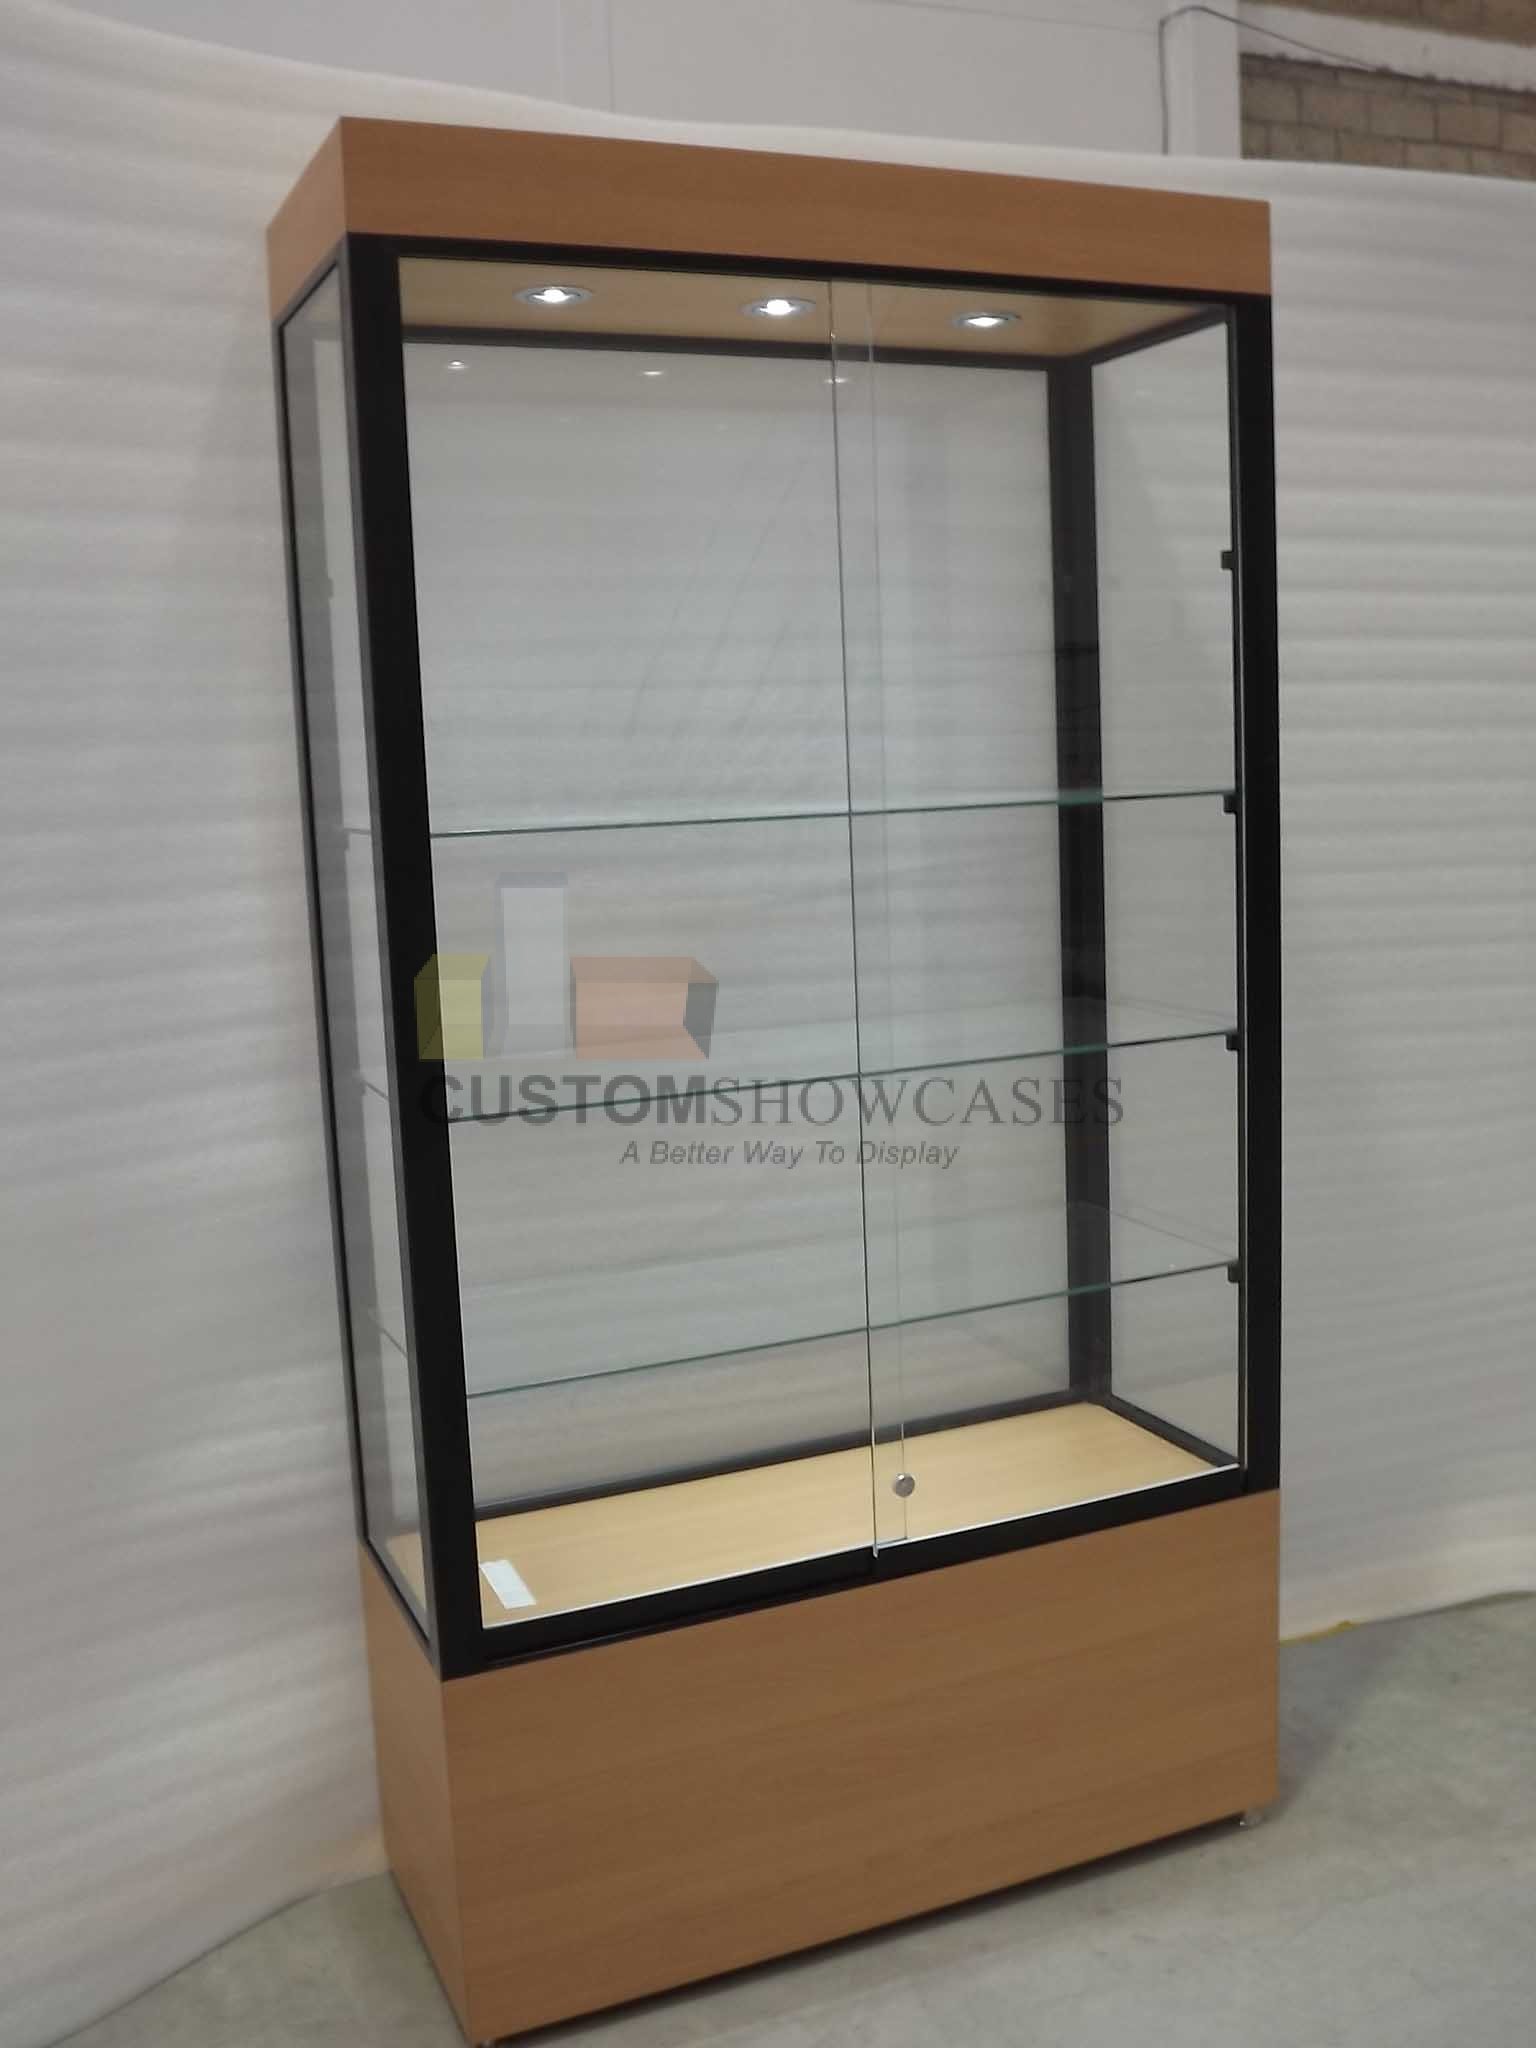 Free standing display cabinets archives custom display projects blog custom display projects - Custom display cabinets ...